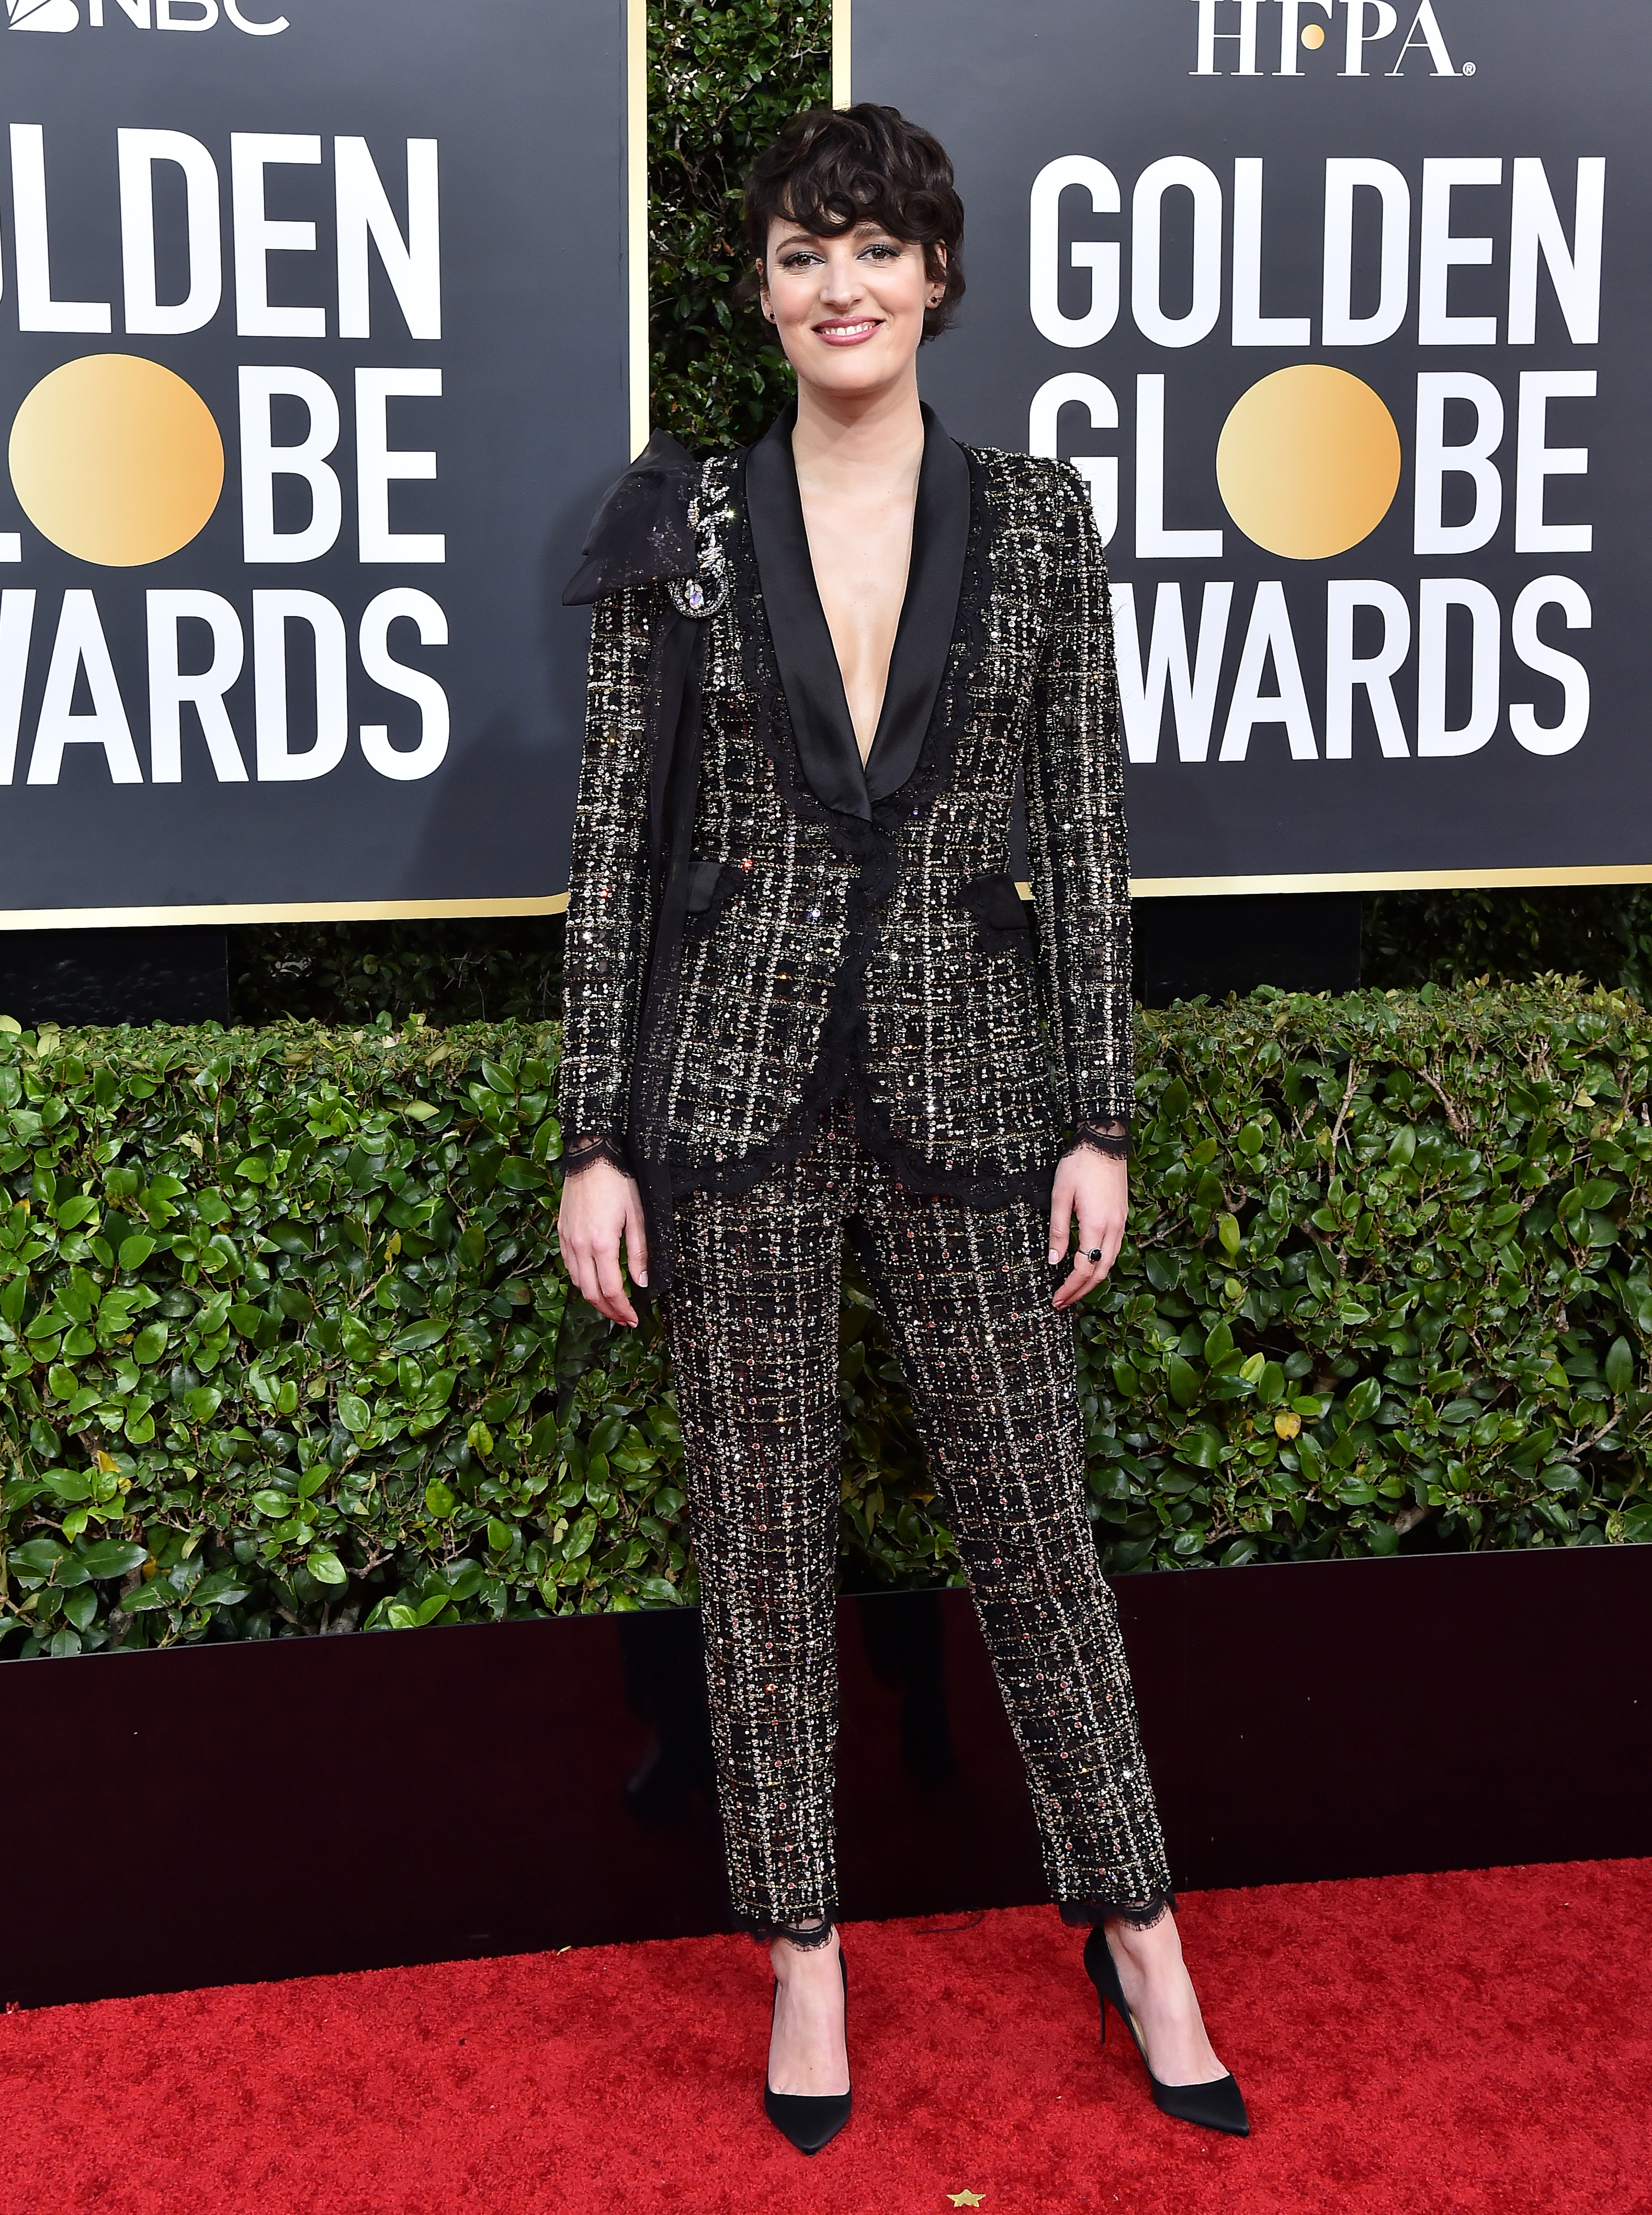 Phoebe Waller-Bridge attends the 77th Annual Golden Globe Awards at The Beverly Hilton Hotel on January 05, 2020 in Beverly Hills, California.